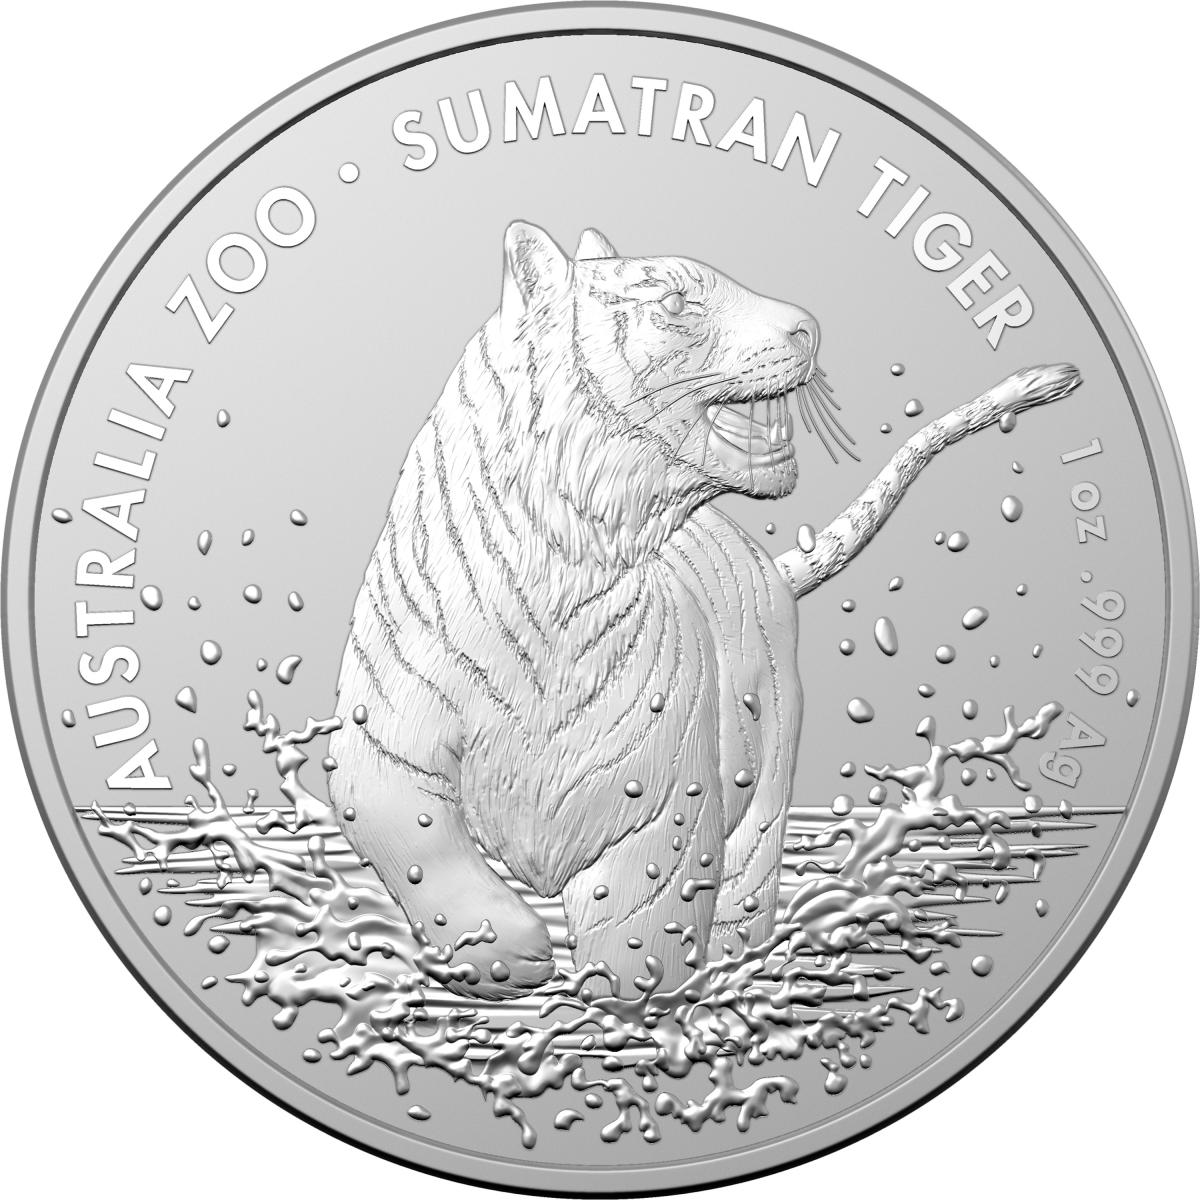 Thumbnail for 2020 1oz Silver Australian Zoo Sumatran Tiger  - Royal Australian Mint Issue